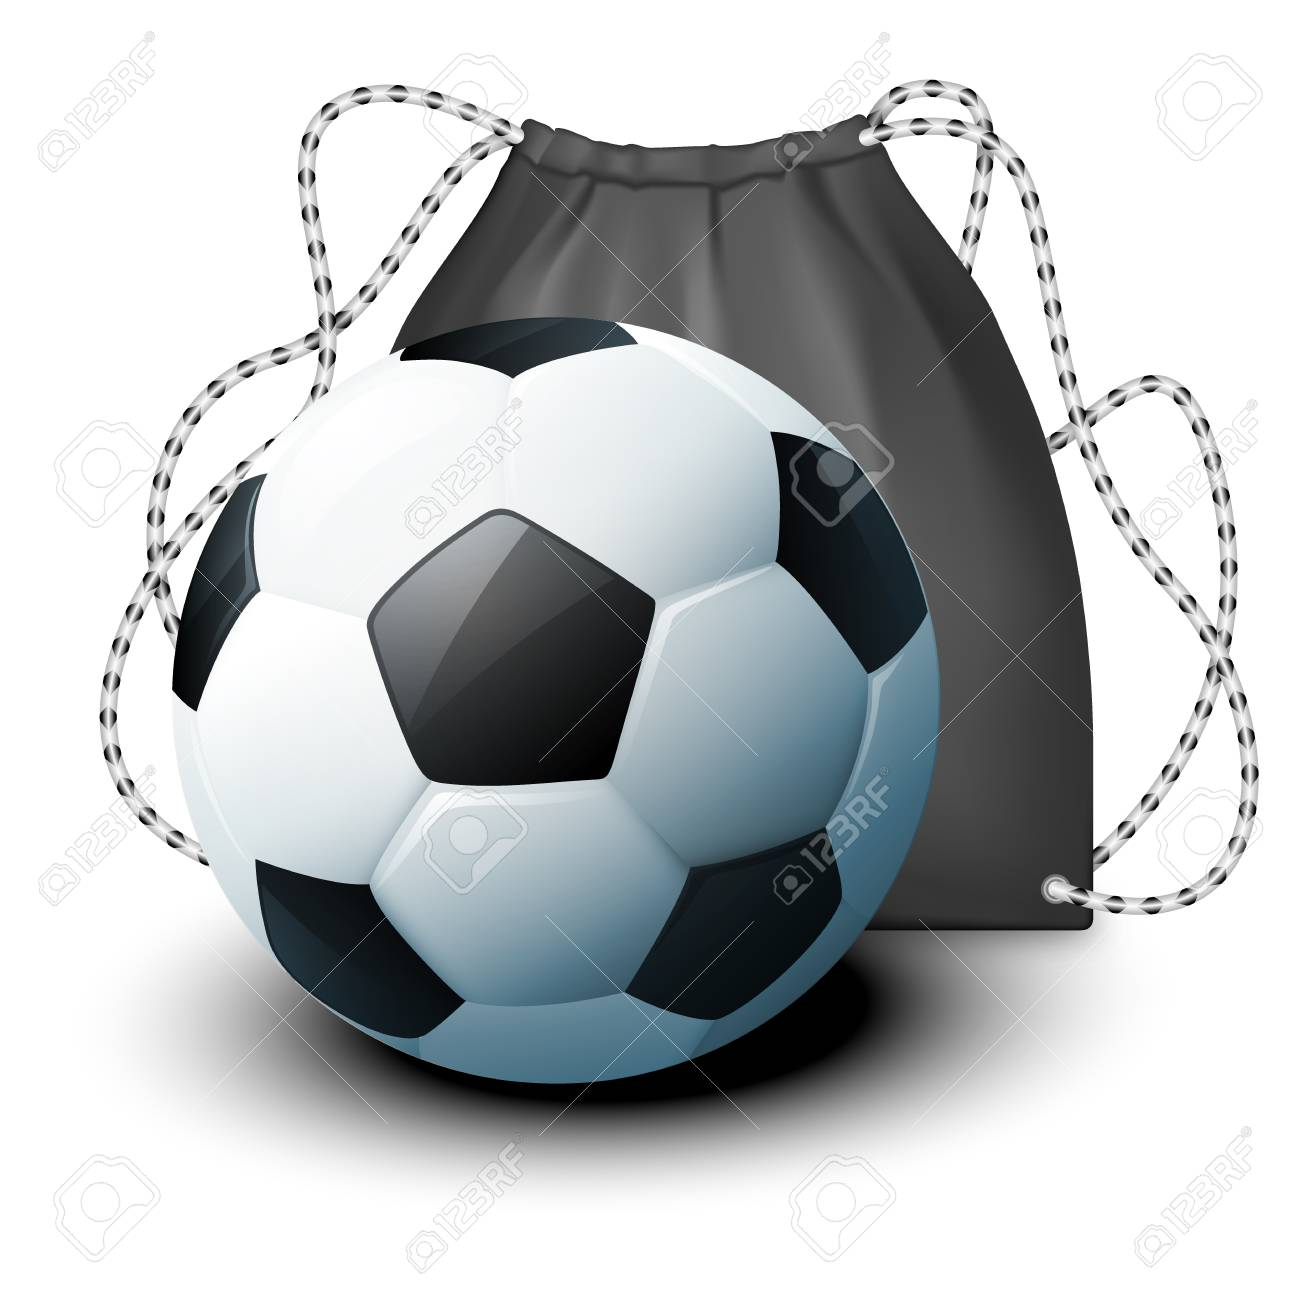 c4a31ce7e804 Vector - Vector icon sport Backpack and a soccer ball in a realistic style.  mockup product layout for demonstrating your design Element for the poster.